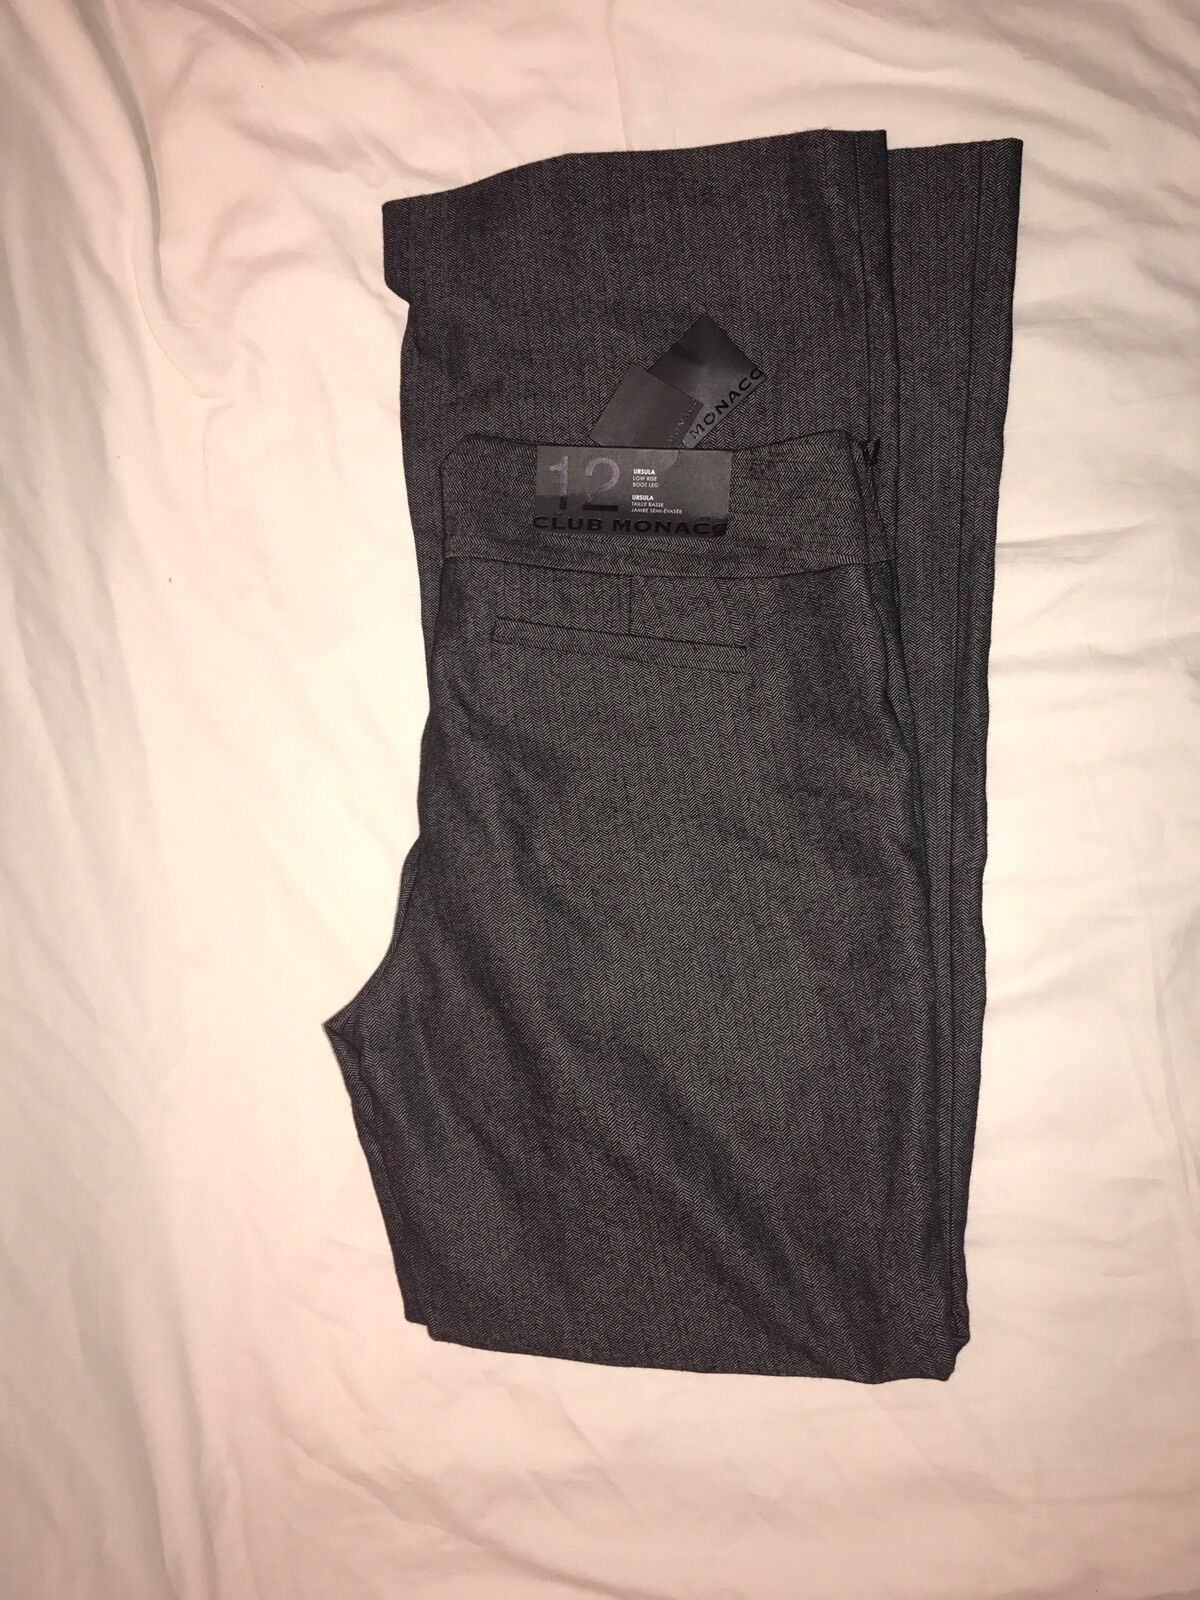 NWT Club Monaco Ursula Bootleg Women's Pants Wool Sz 12 free shipping